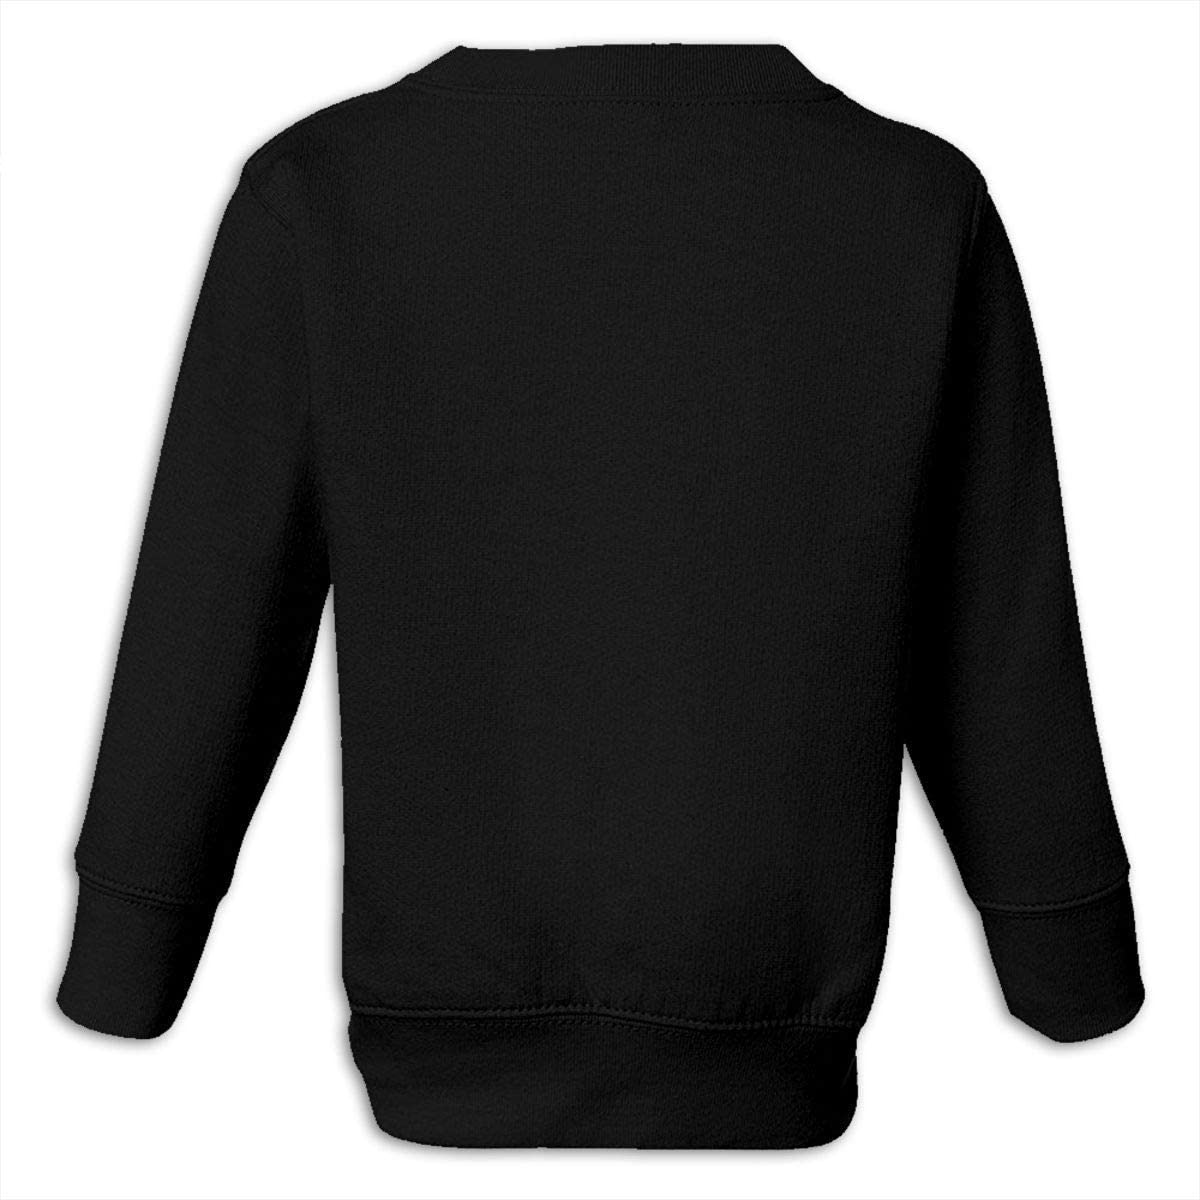 Classic Math Boys Girls Pullover Sweaters Crewneck Sweatshirts Clothes for 2-6 Years Old Children